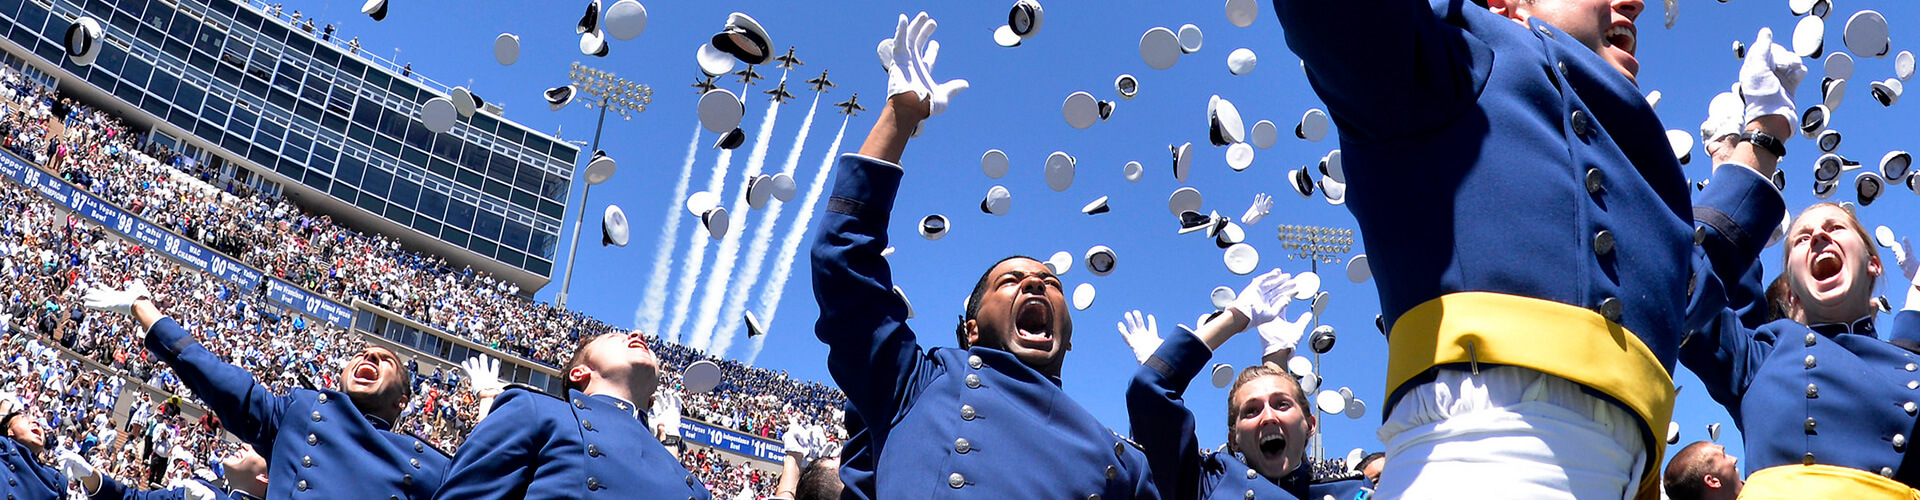 Graduation - United States Air Force Academy